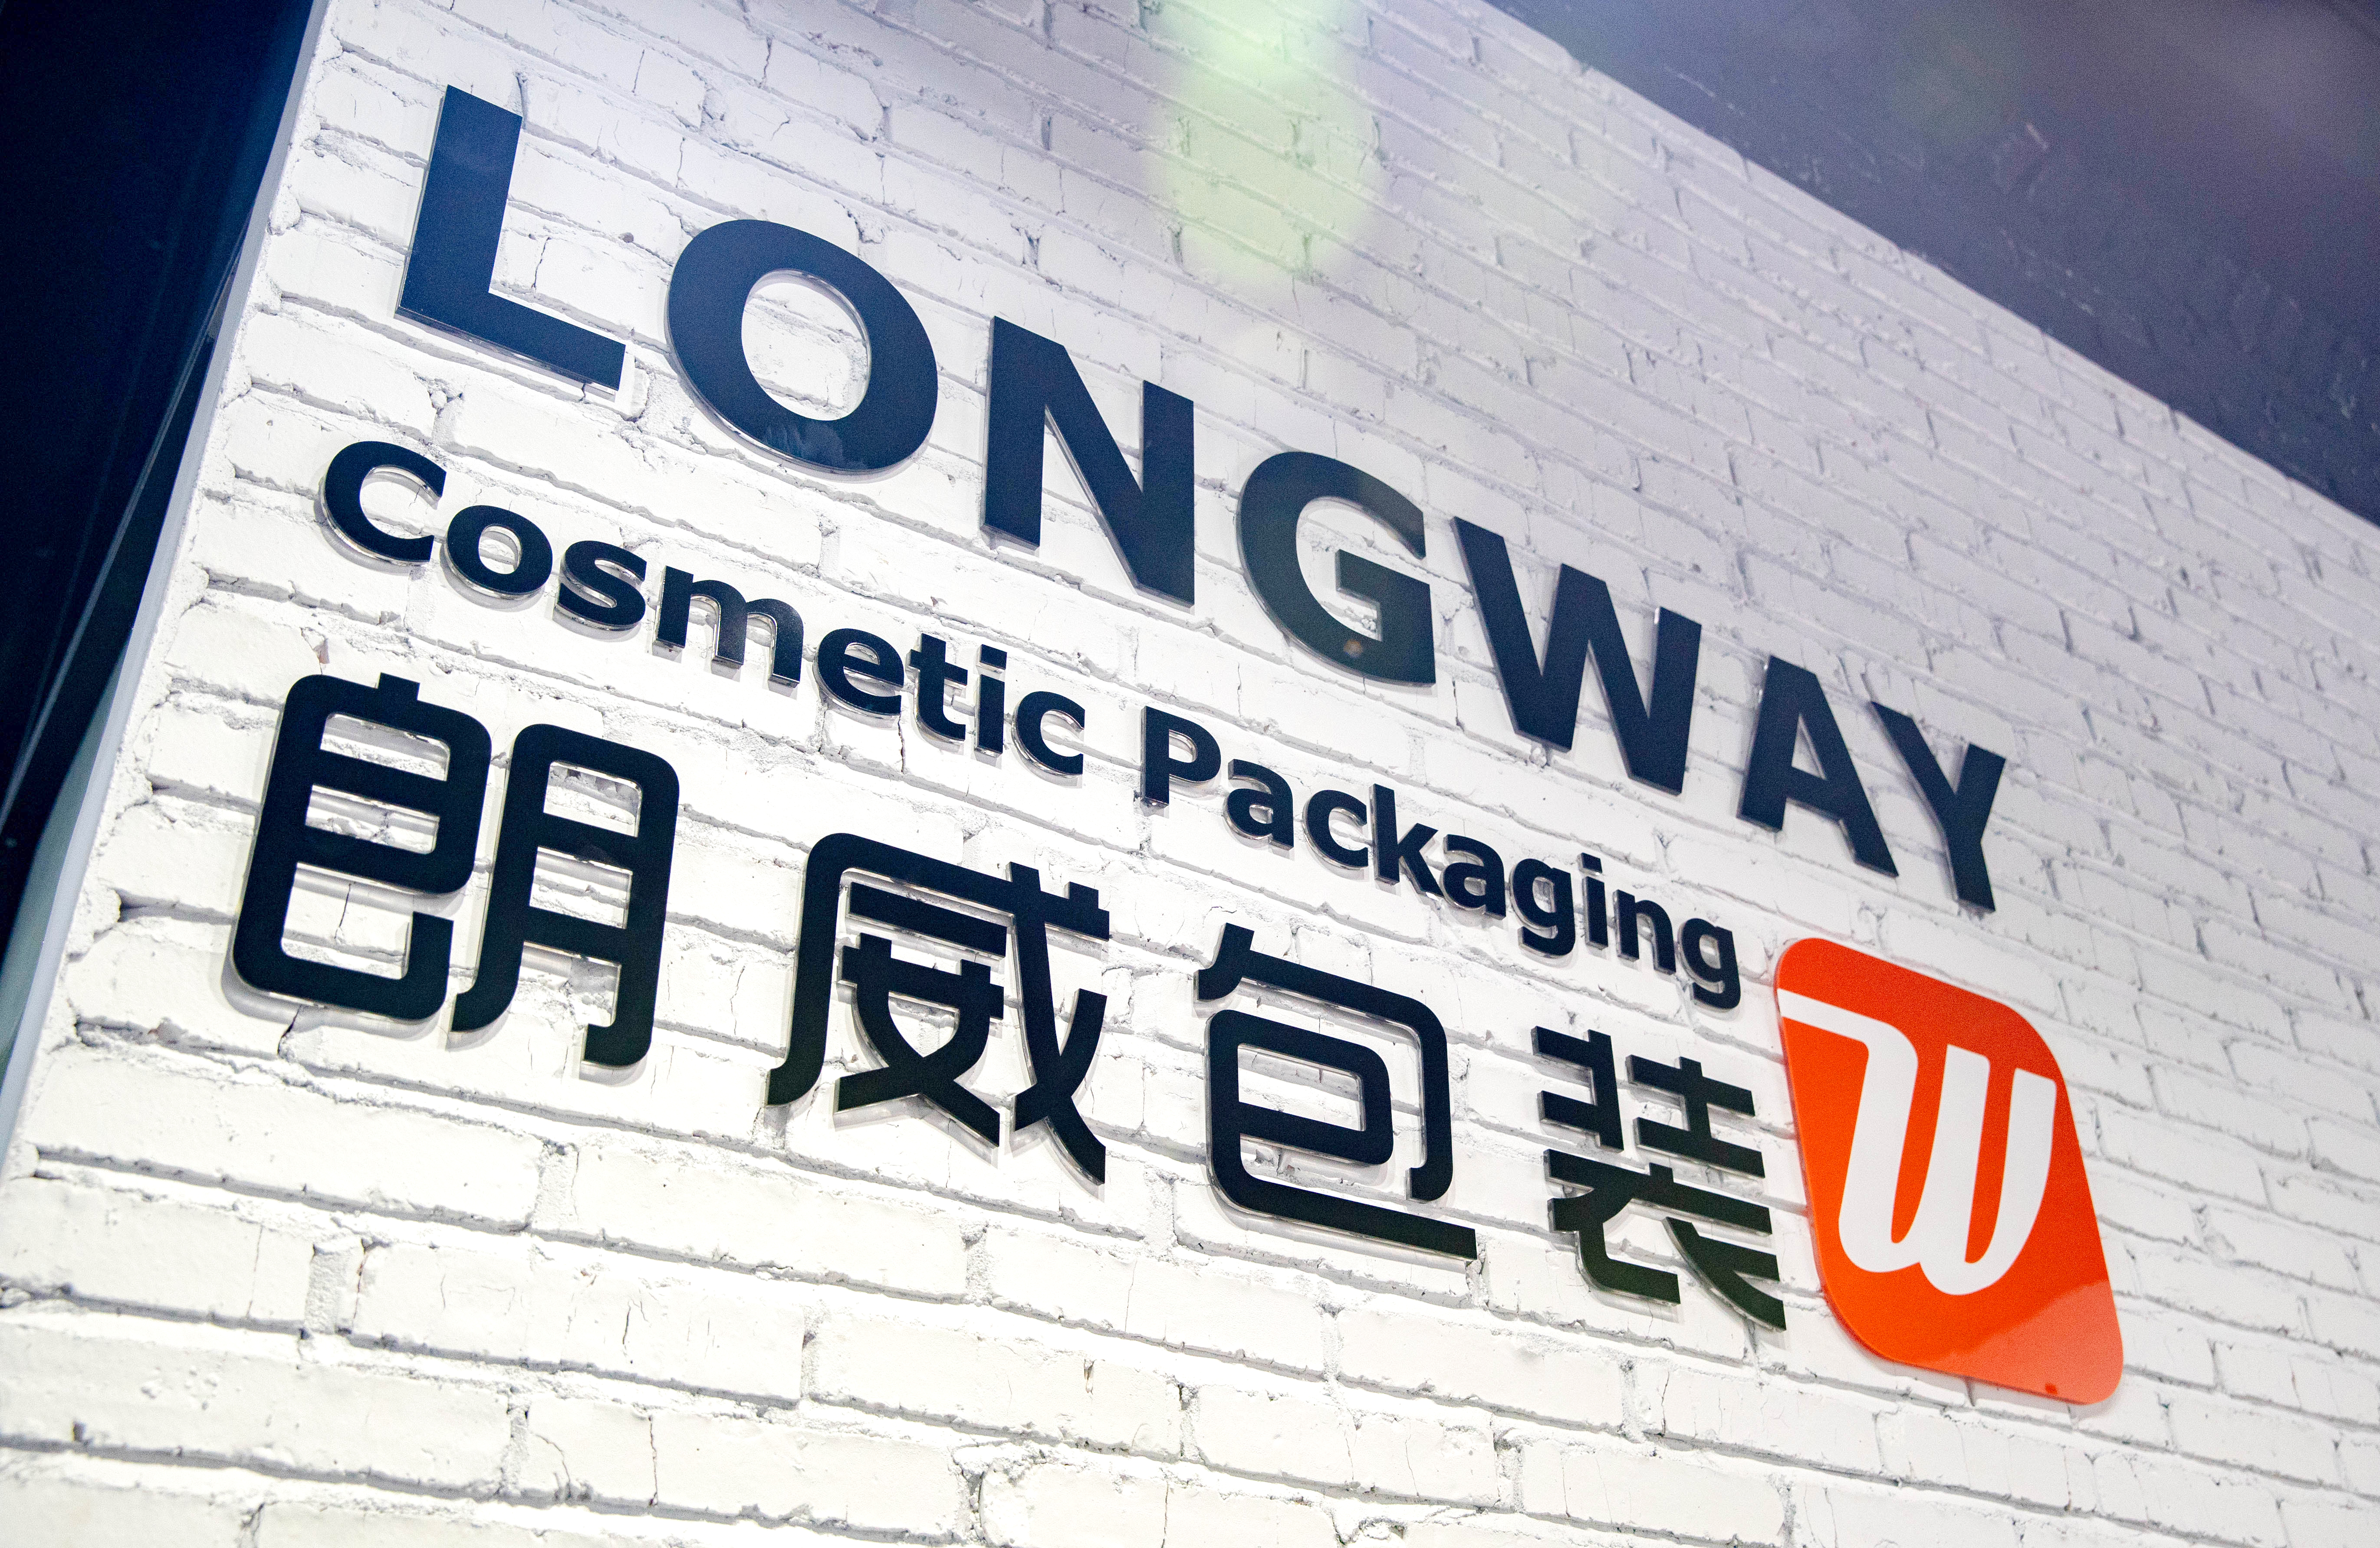 Online sales of cosmetics in China rose 26% in the first half of the year